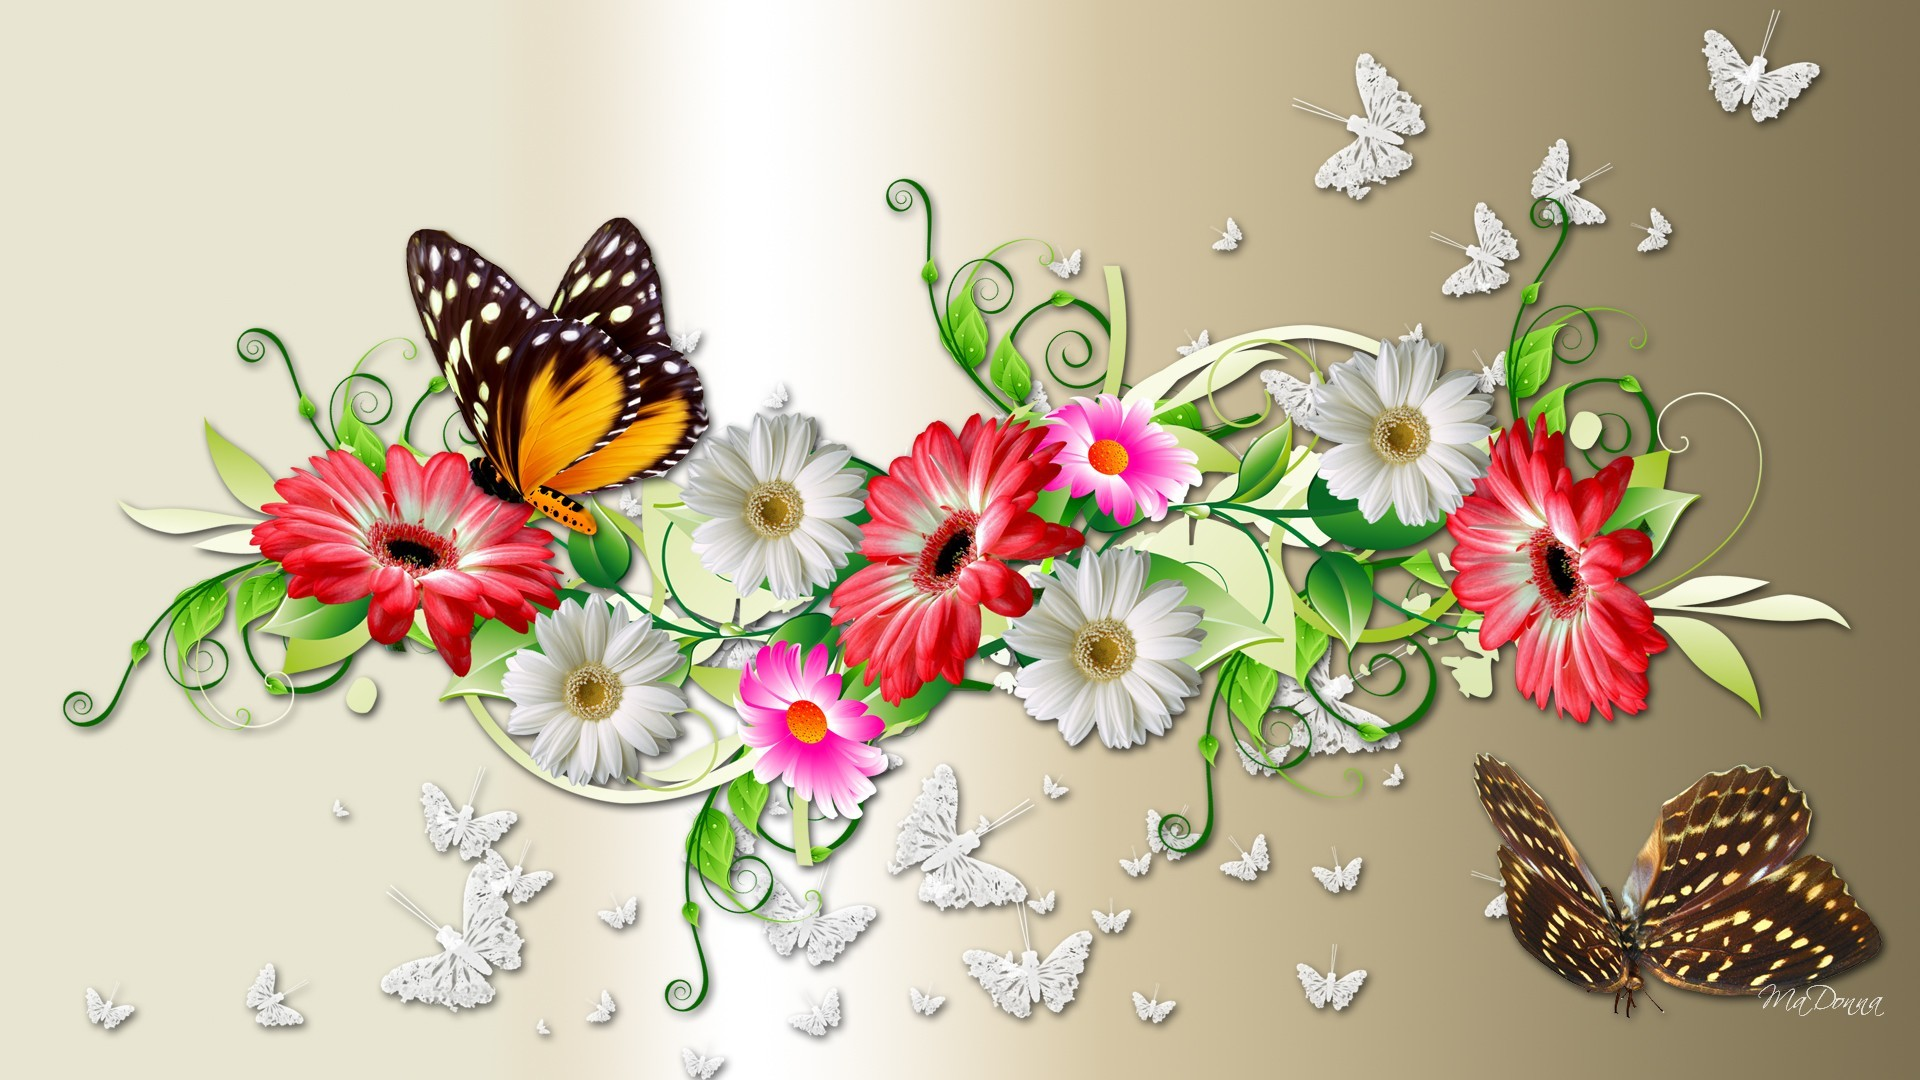 1920x1080 Spring Flowers And Butterflies Background